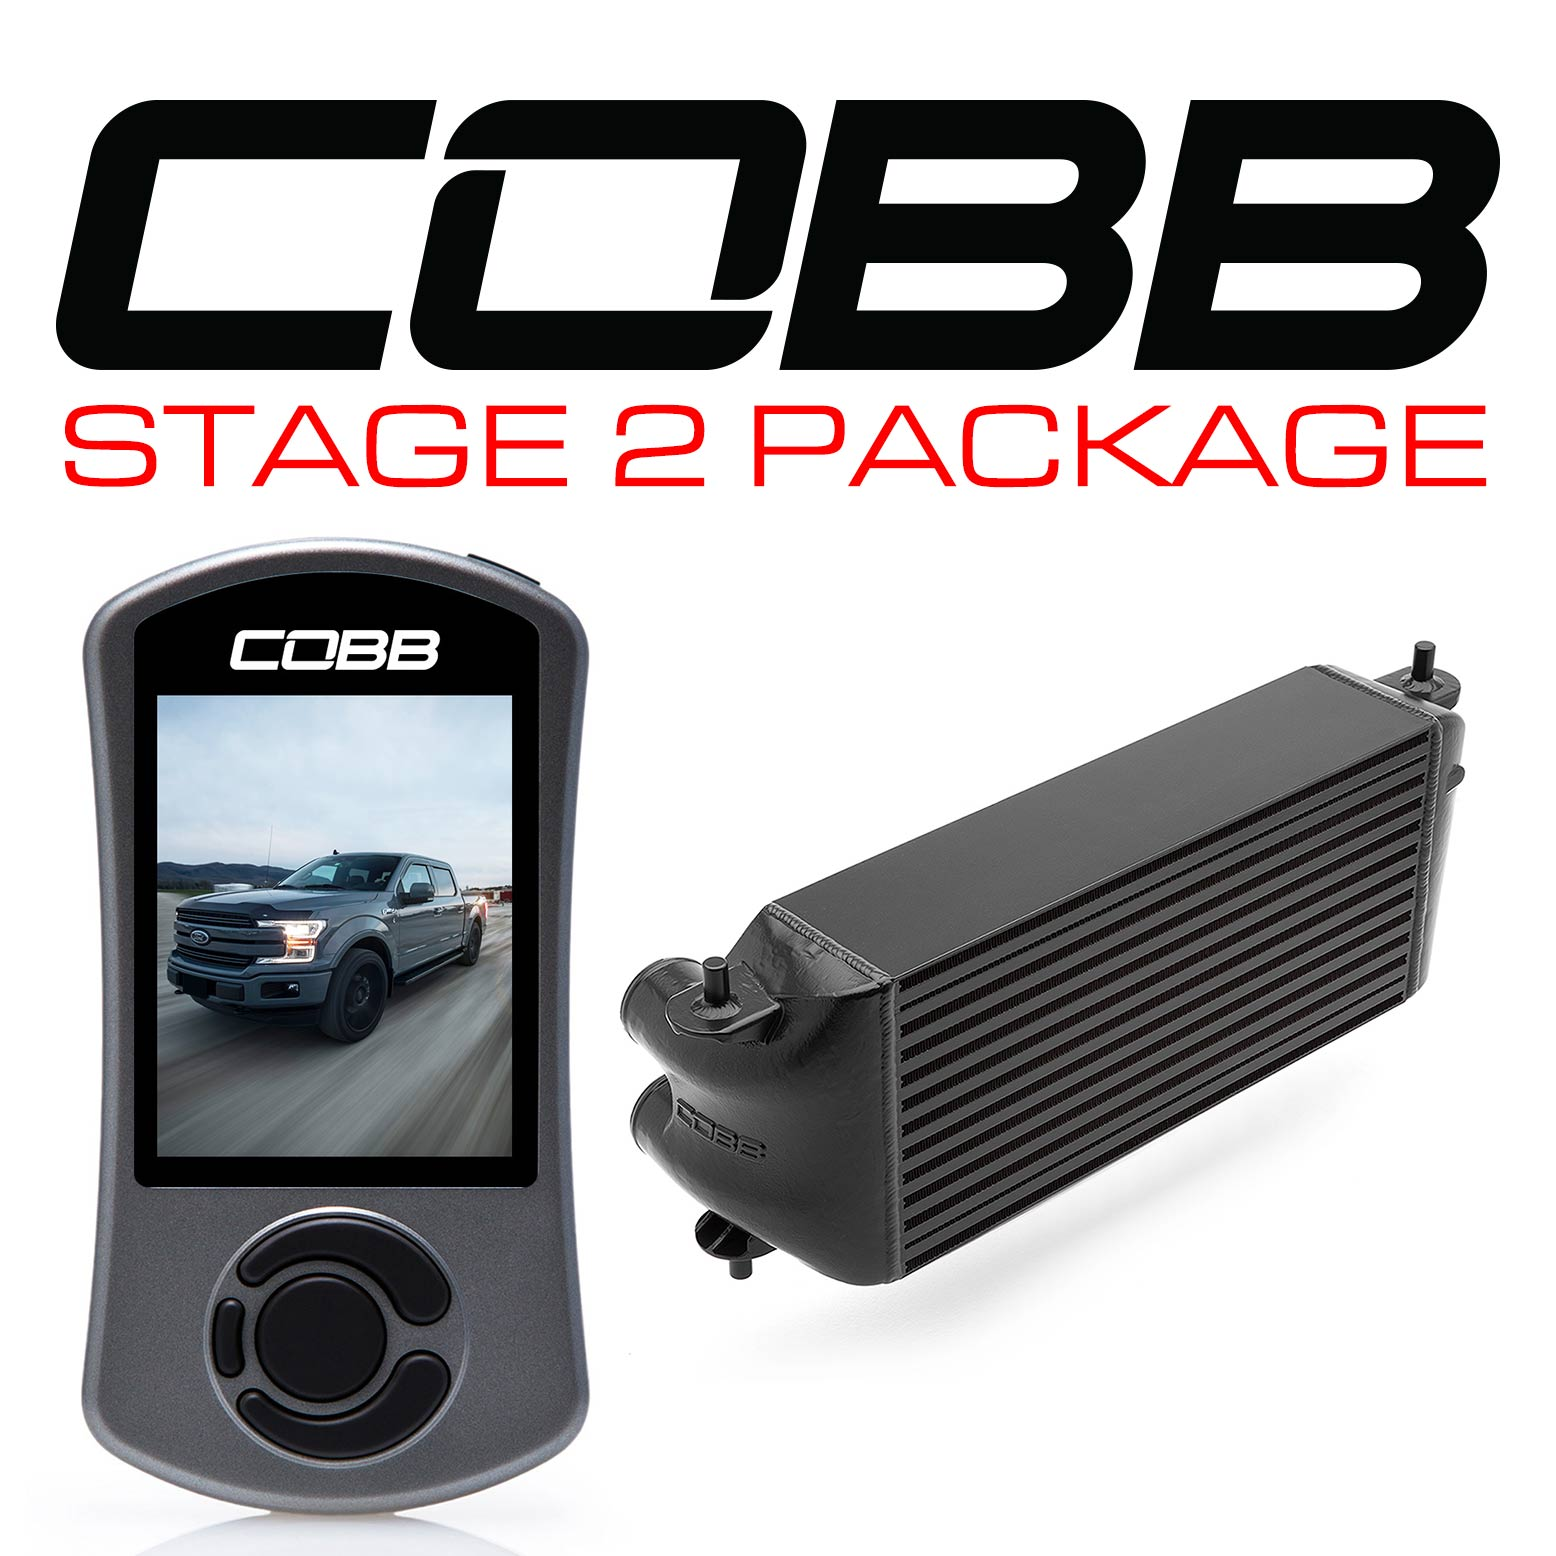 Ford Stage 2 Power Package Black (Factory Location Intercooler, No Intake) with TCM F-150 Ecoboost 3.5L 2017-2019